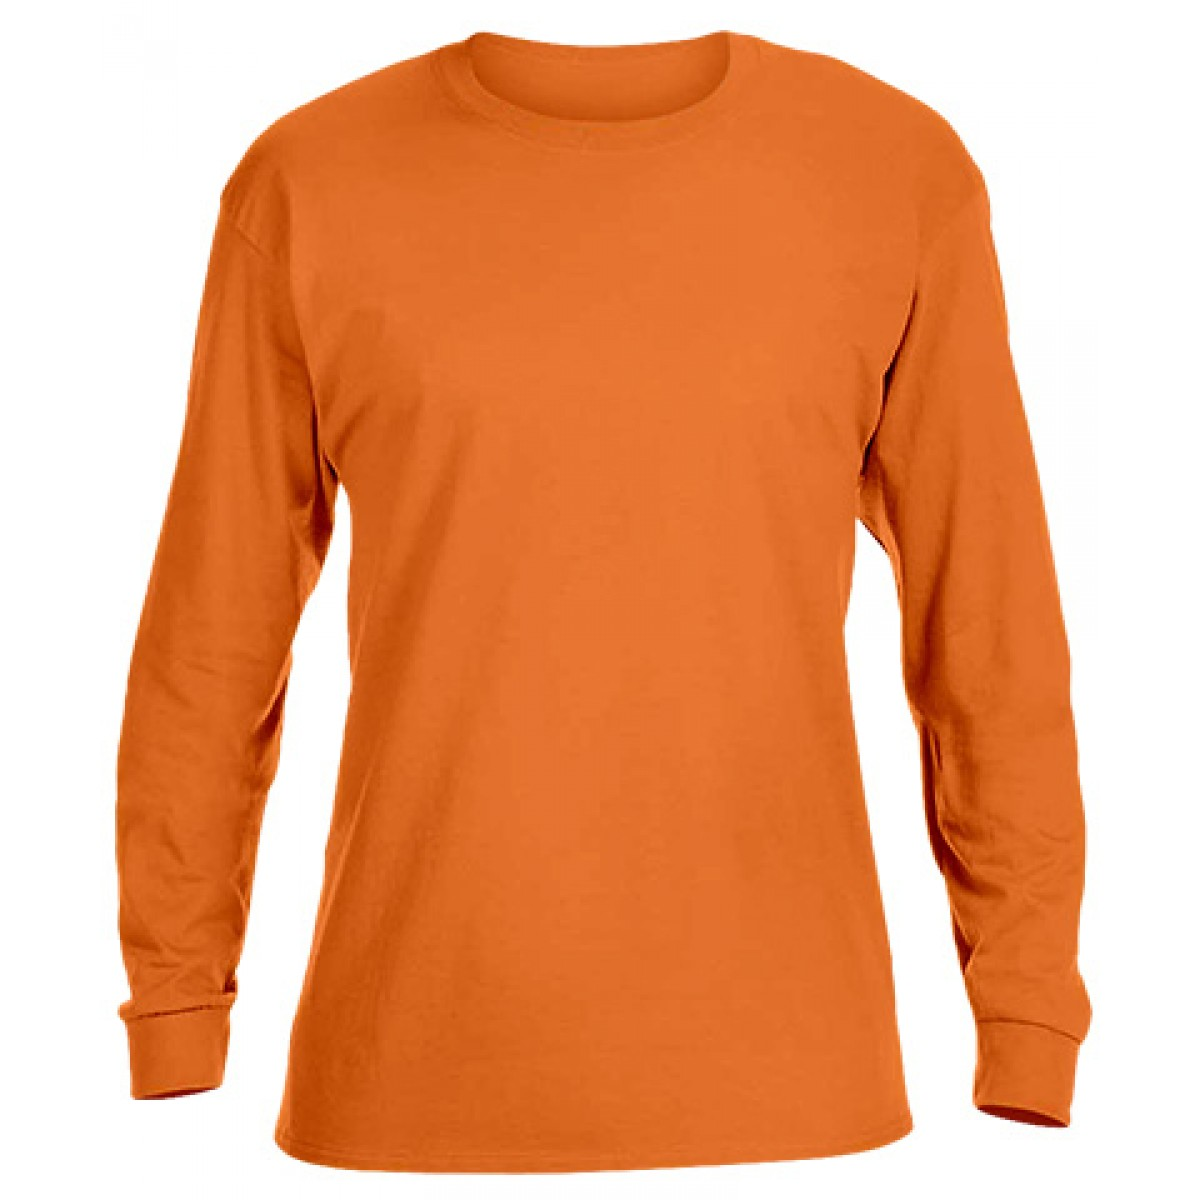 Basic Long Sleeve Crew Neck -Orange-L